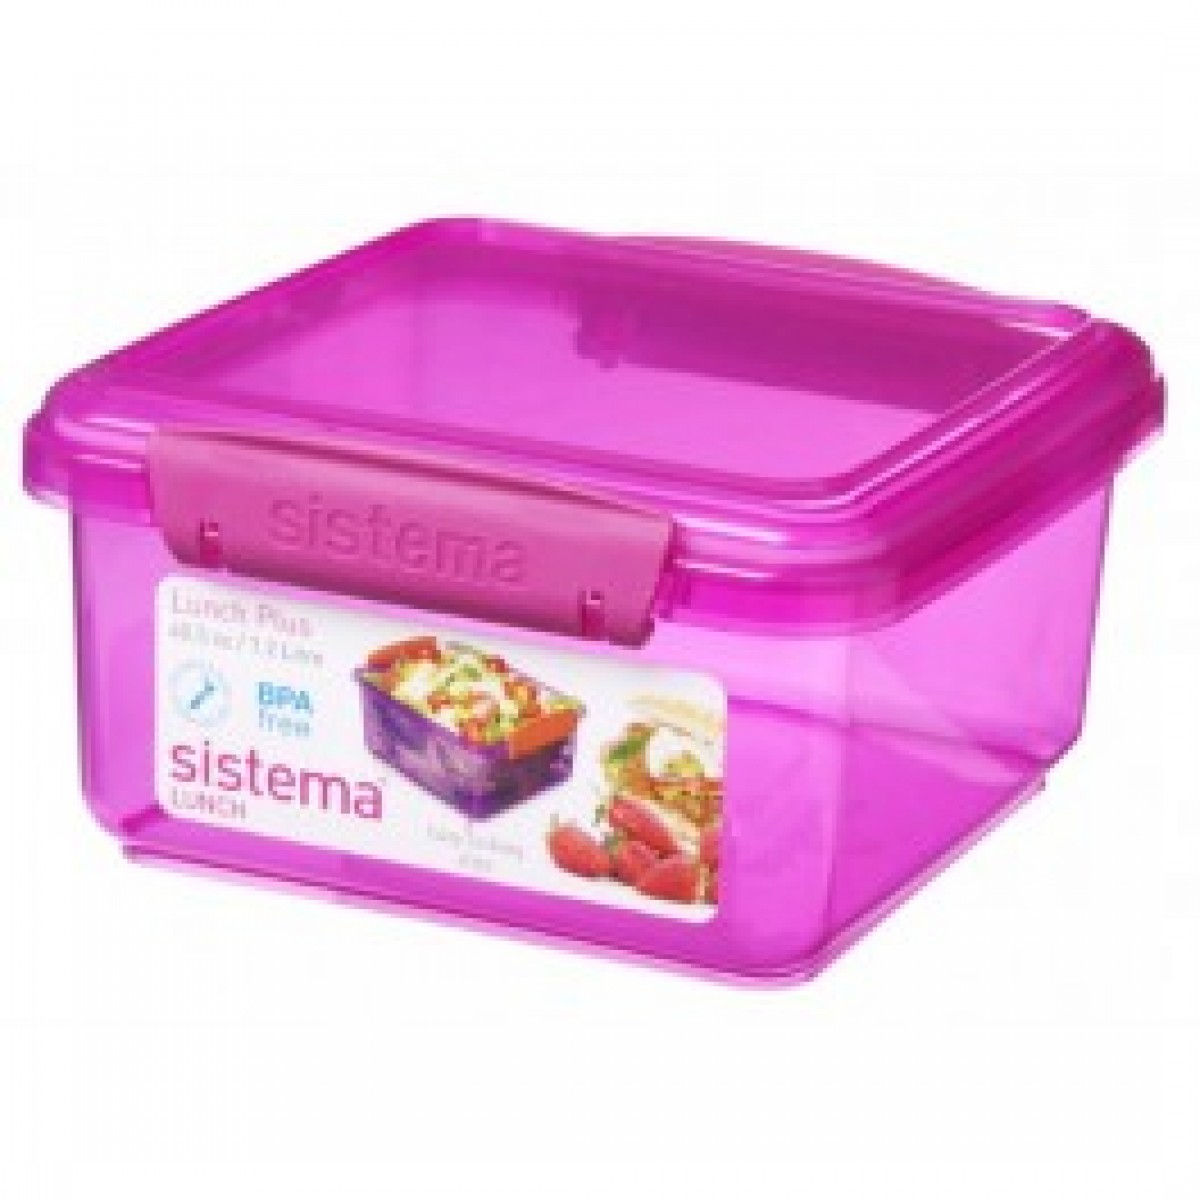 SISTEMA Madkasse lunch plus pink 1,2 ltr.